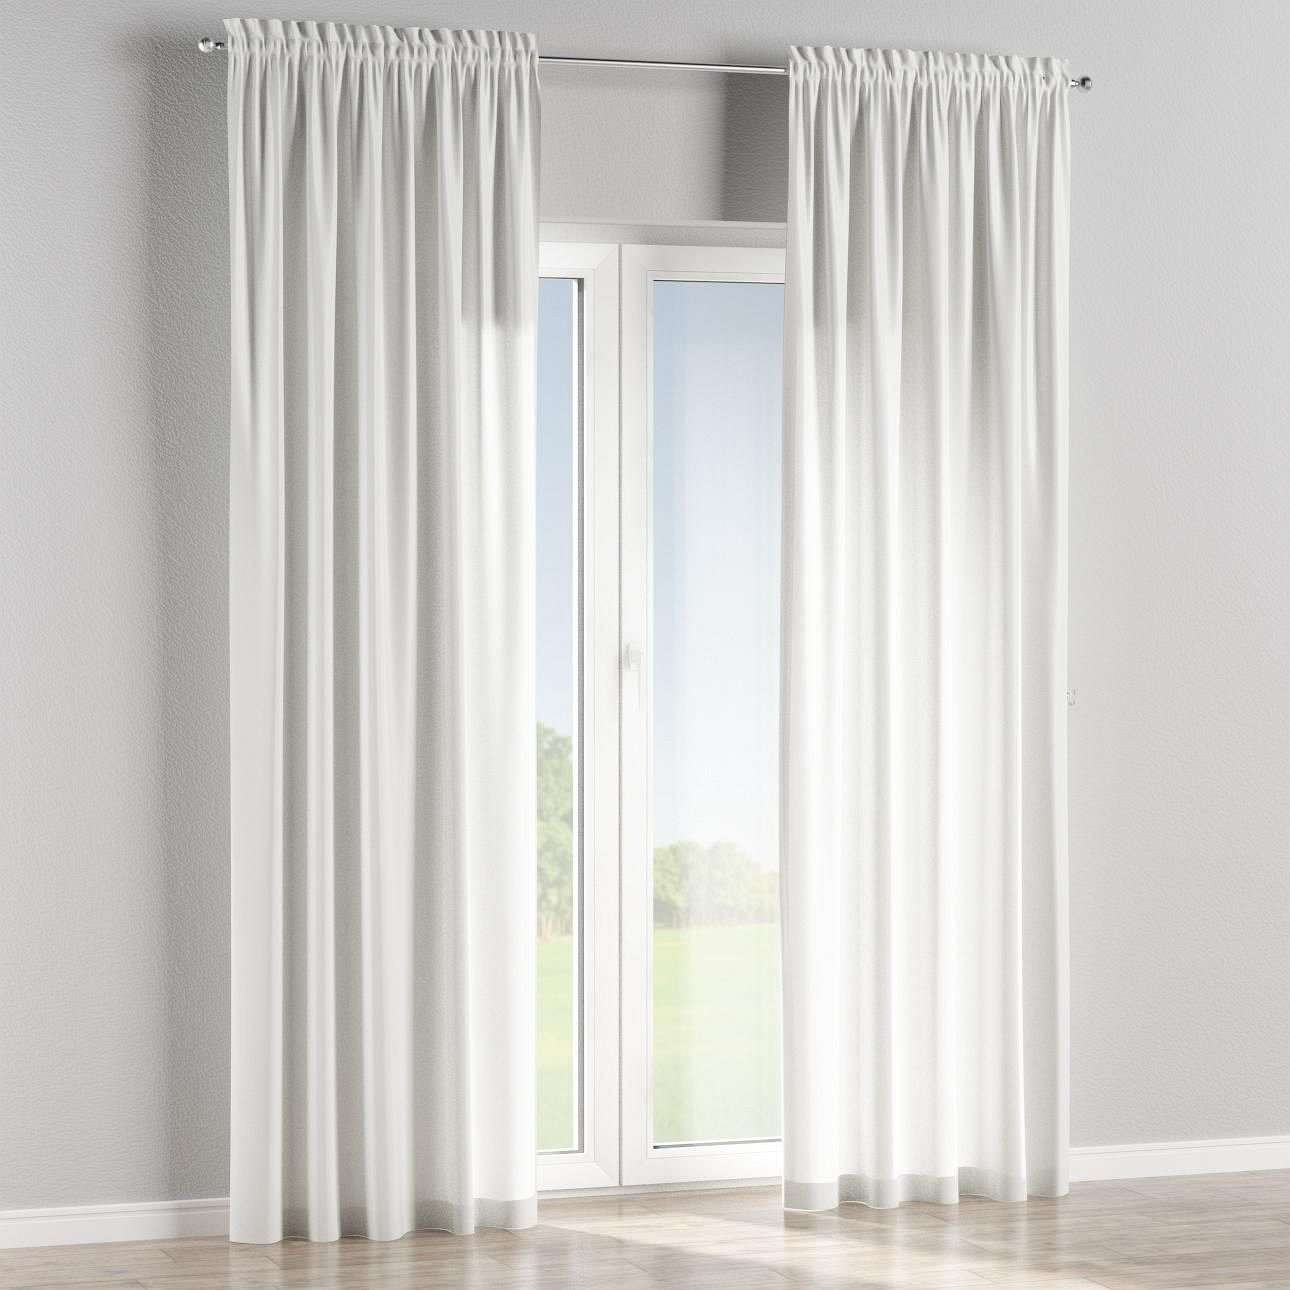 Slot and frill lined curtains in collection Bristol, fabric: 126-15